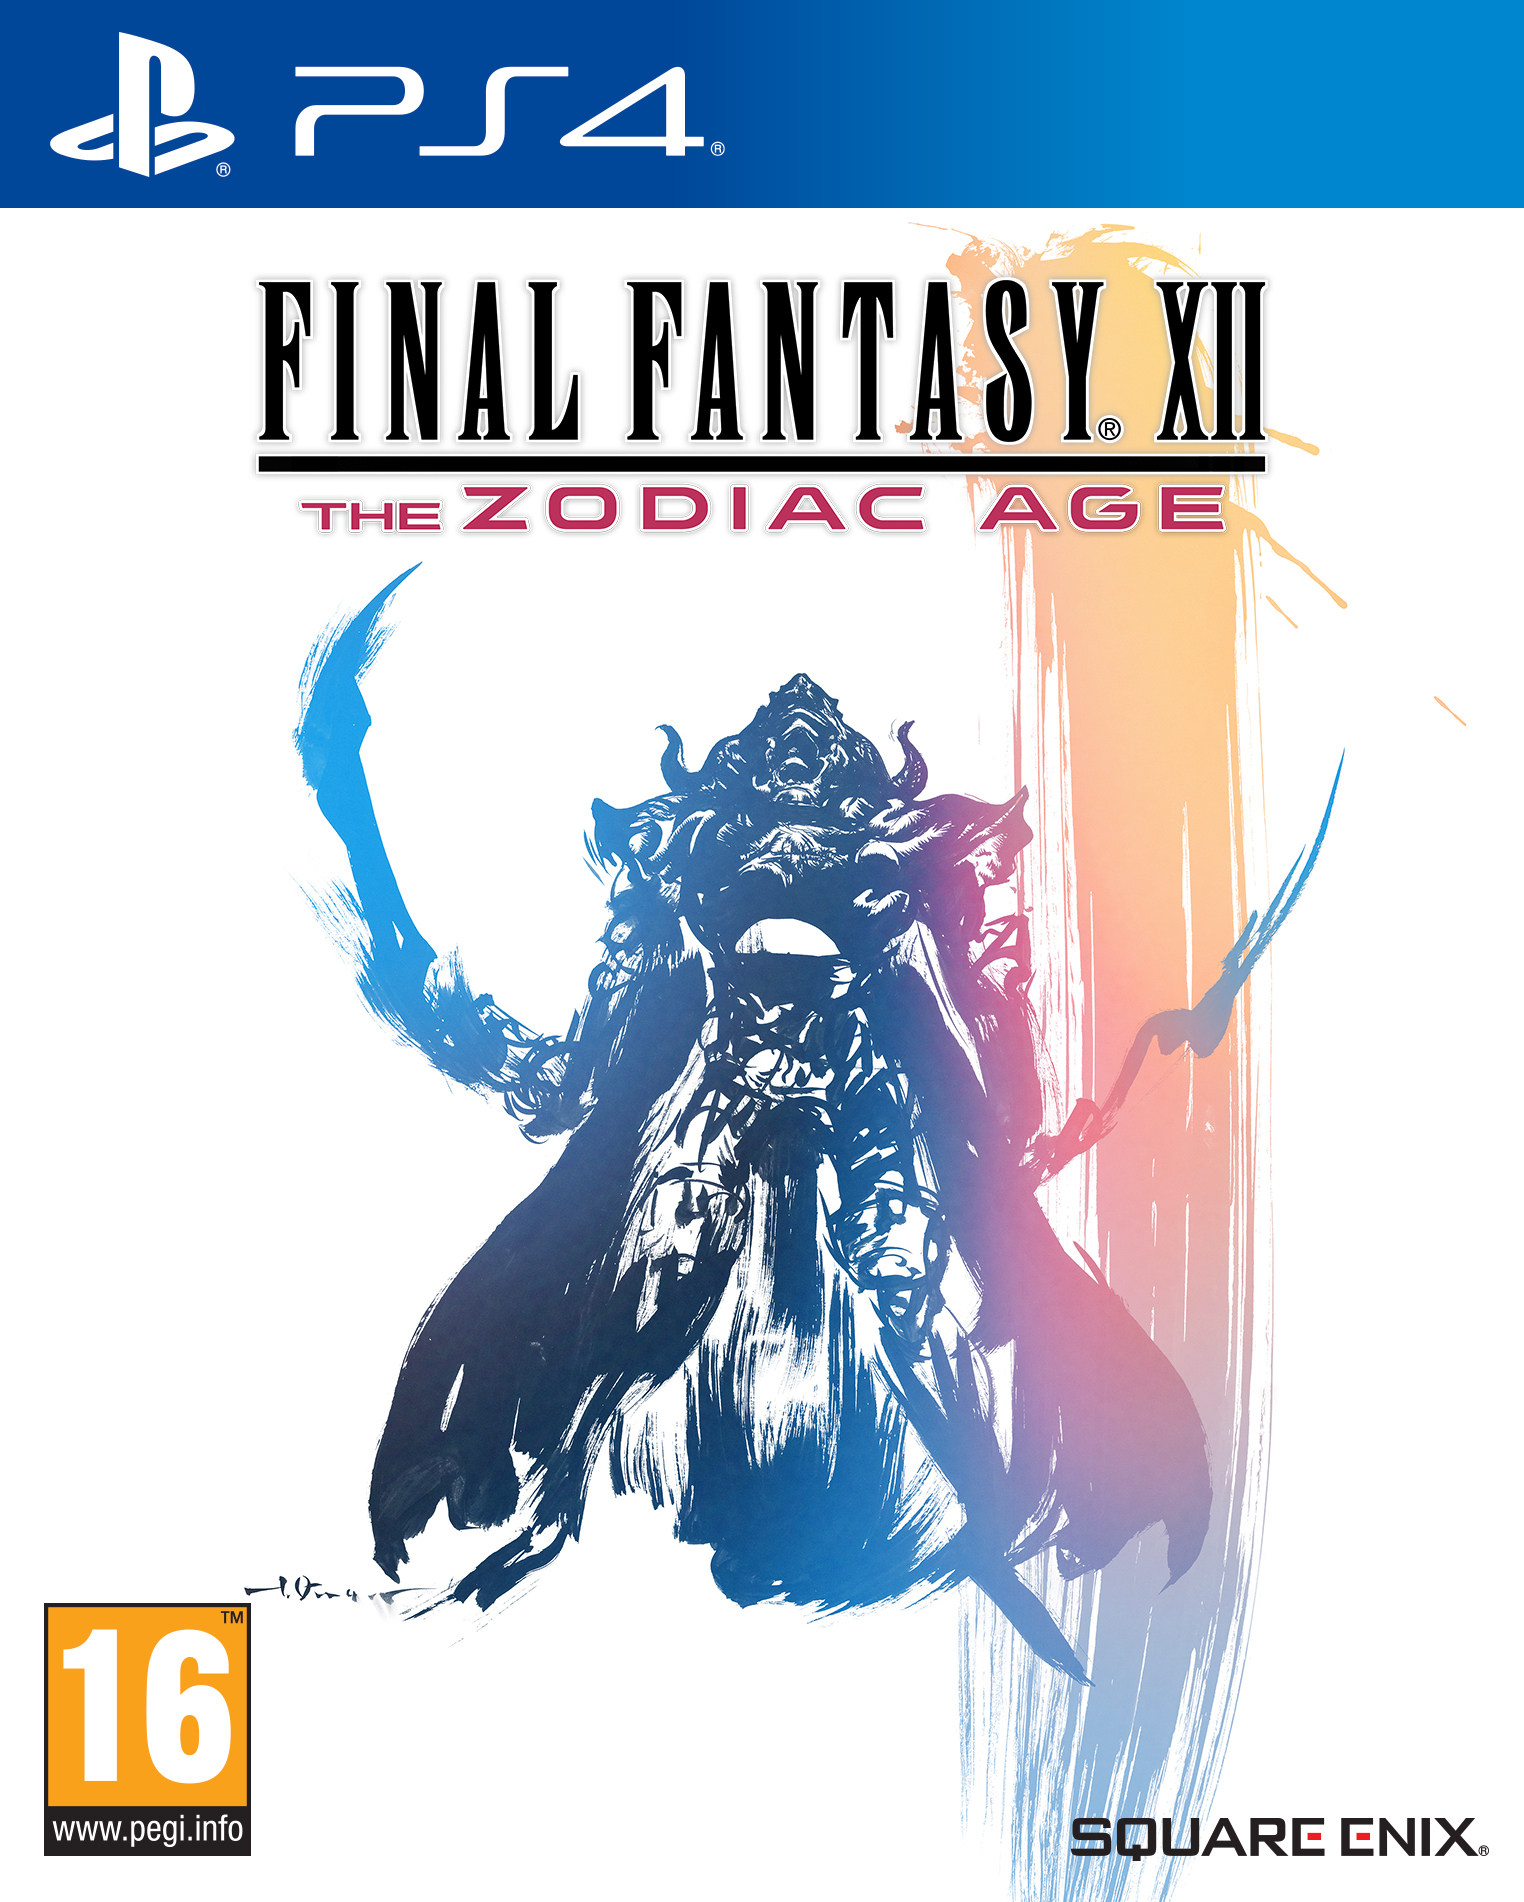 Final Fantasy XII (12): The Zodiac Age